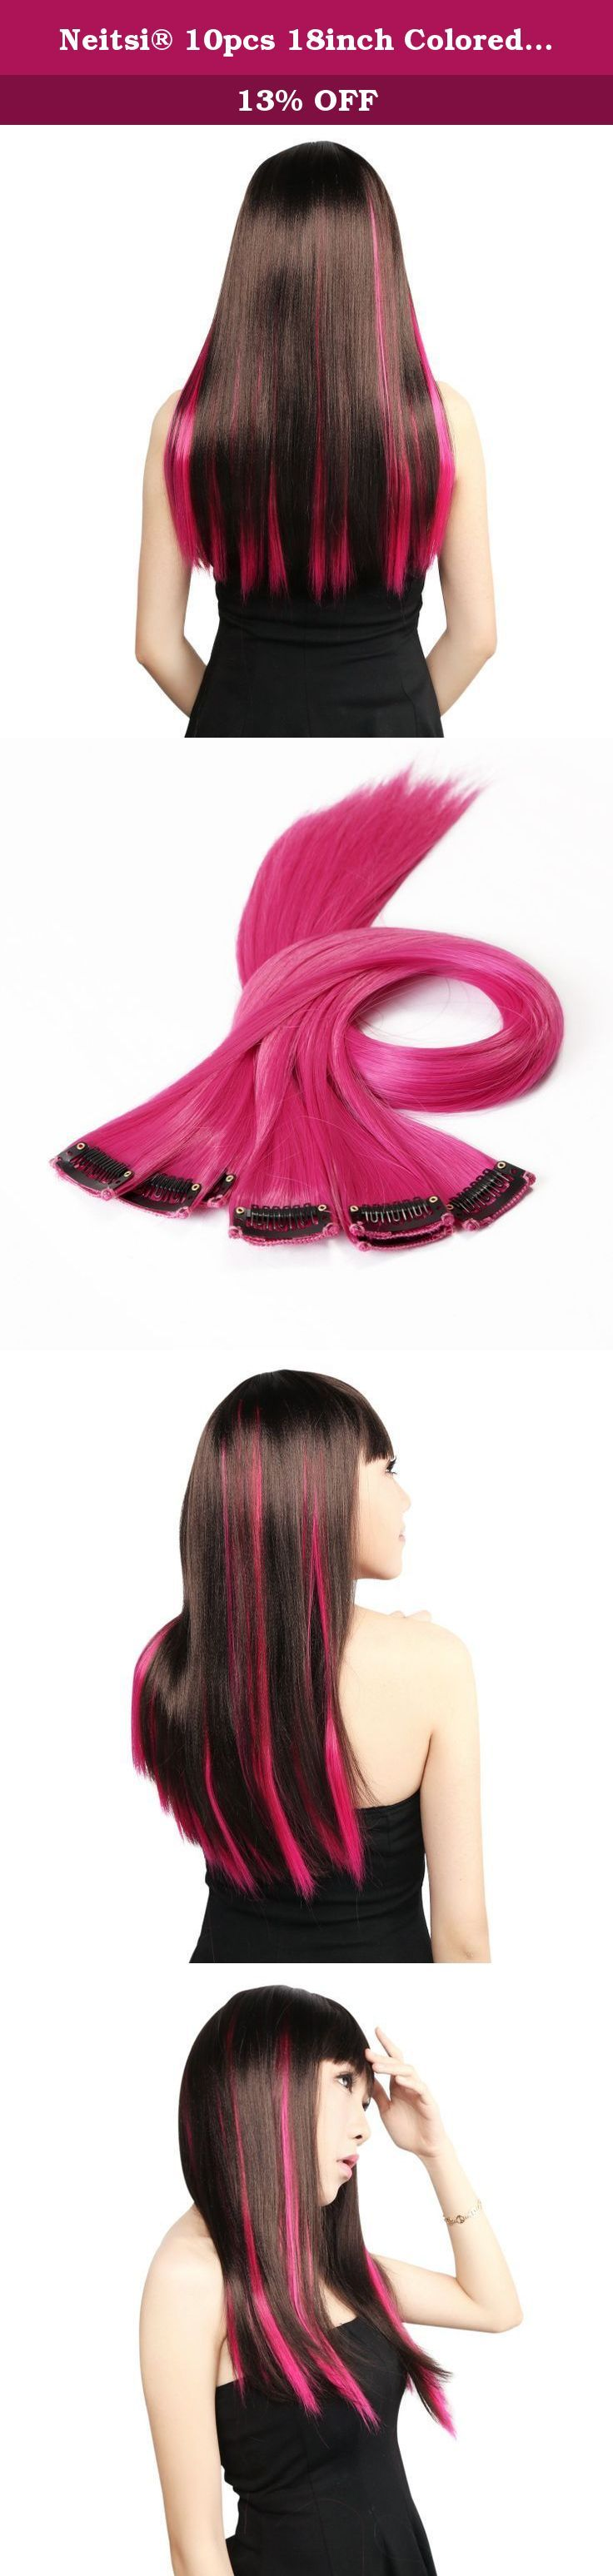 Neitsi® 10pcs 18inch Colored Highlight Synthetic Clip on in Hair Extensions #F09 Rose. Color: Rose Length:18inch(45cm) packing:Total 10pcs 2pcs/pack,25g/pc Material:High Quality Synthetic hair Avaliable length:18inch(45cm) Avaliable Color: 12 color in stock now,Orange,red,blue,purple,gold,green,white,yellow,pink,red wine, light pink, light blue. Style: Synthetic clip in hair extensions Highlight clip in hair weft for decoration Rewarding item,PLEASE do not leave negative feedback...